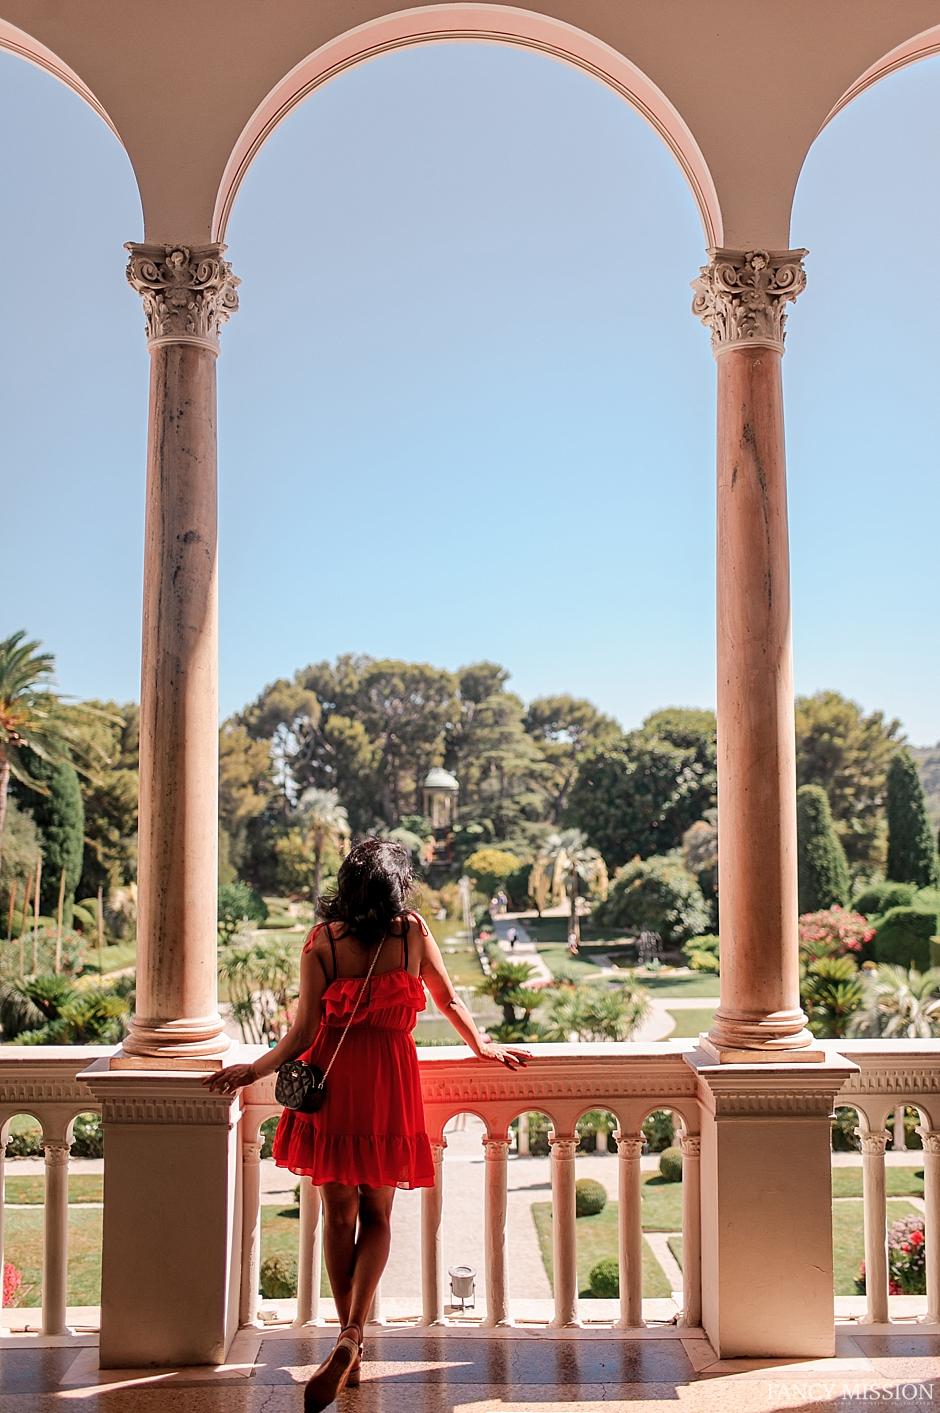 The French Riviera | World Travels of Hubert & Alka